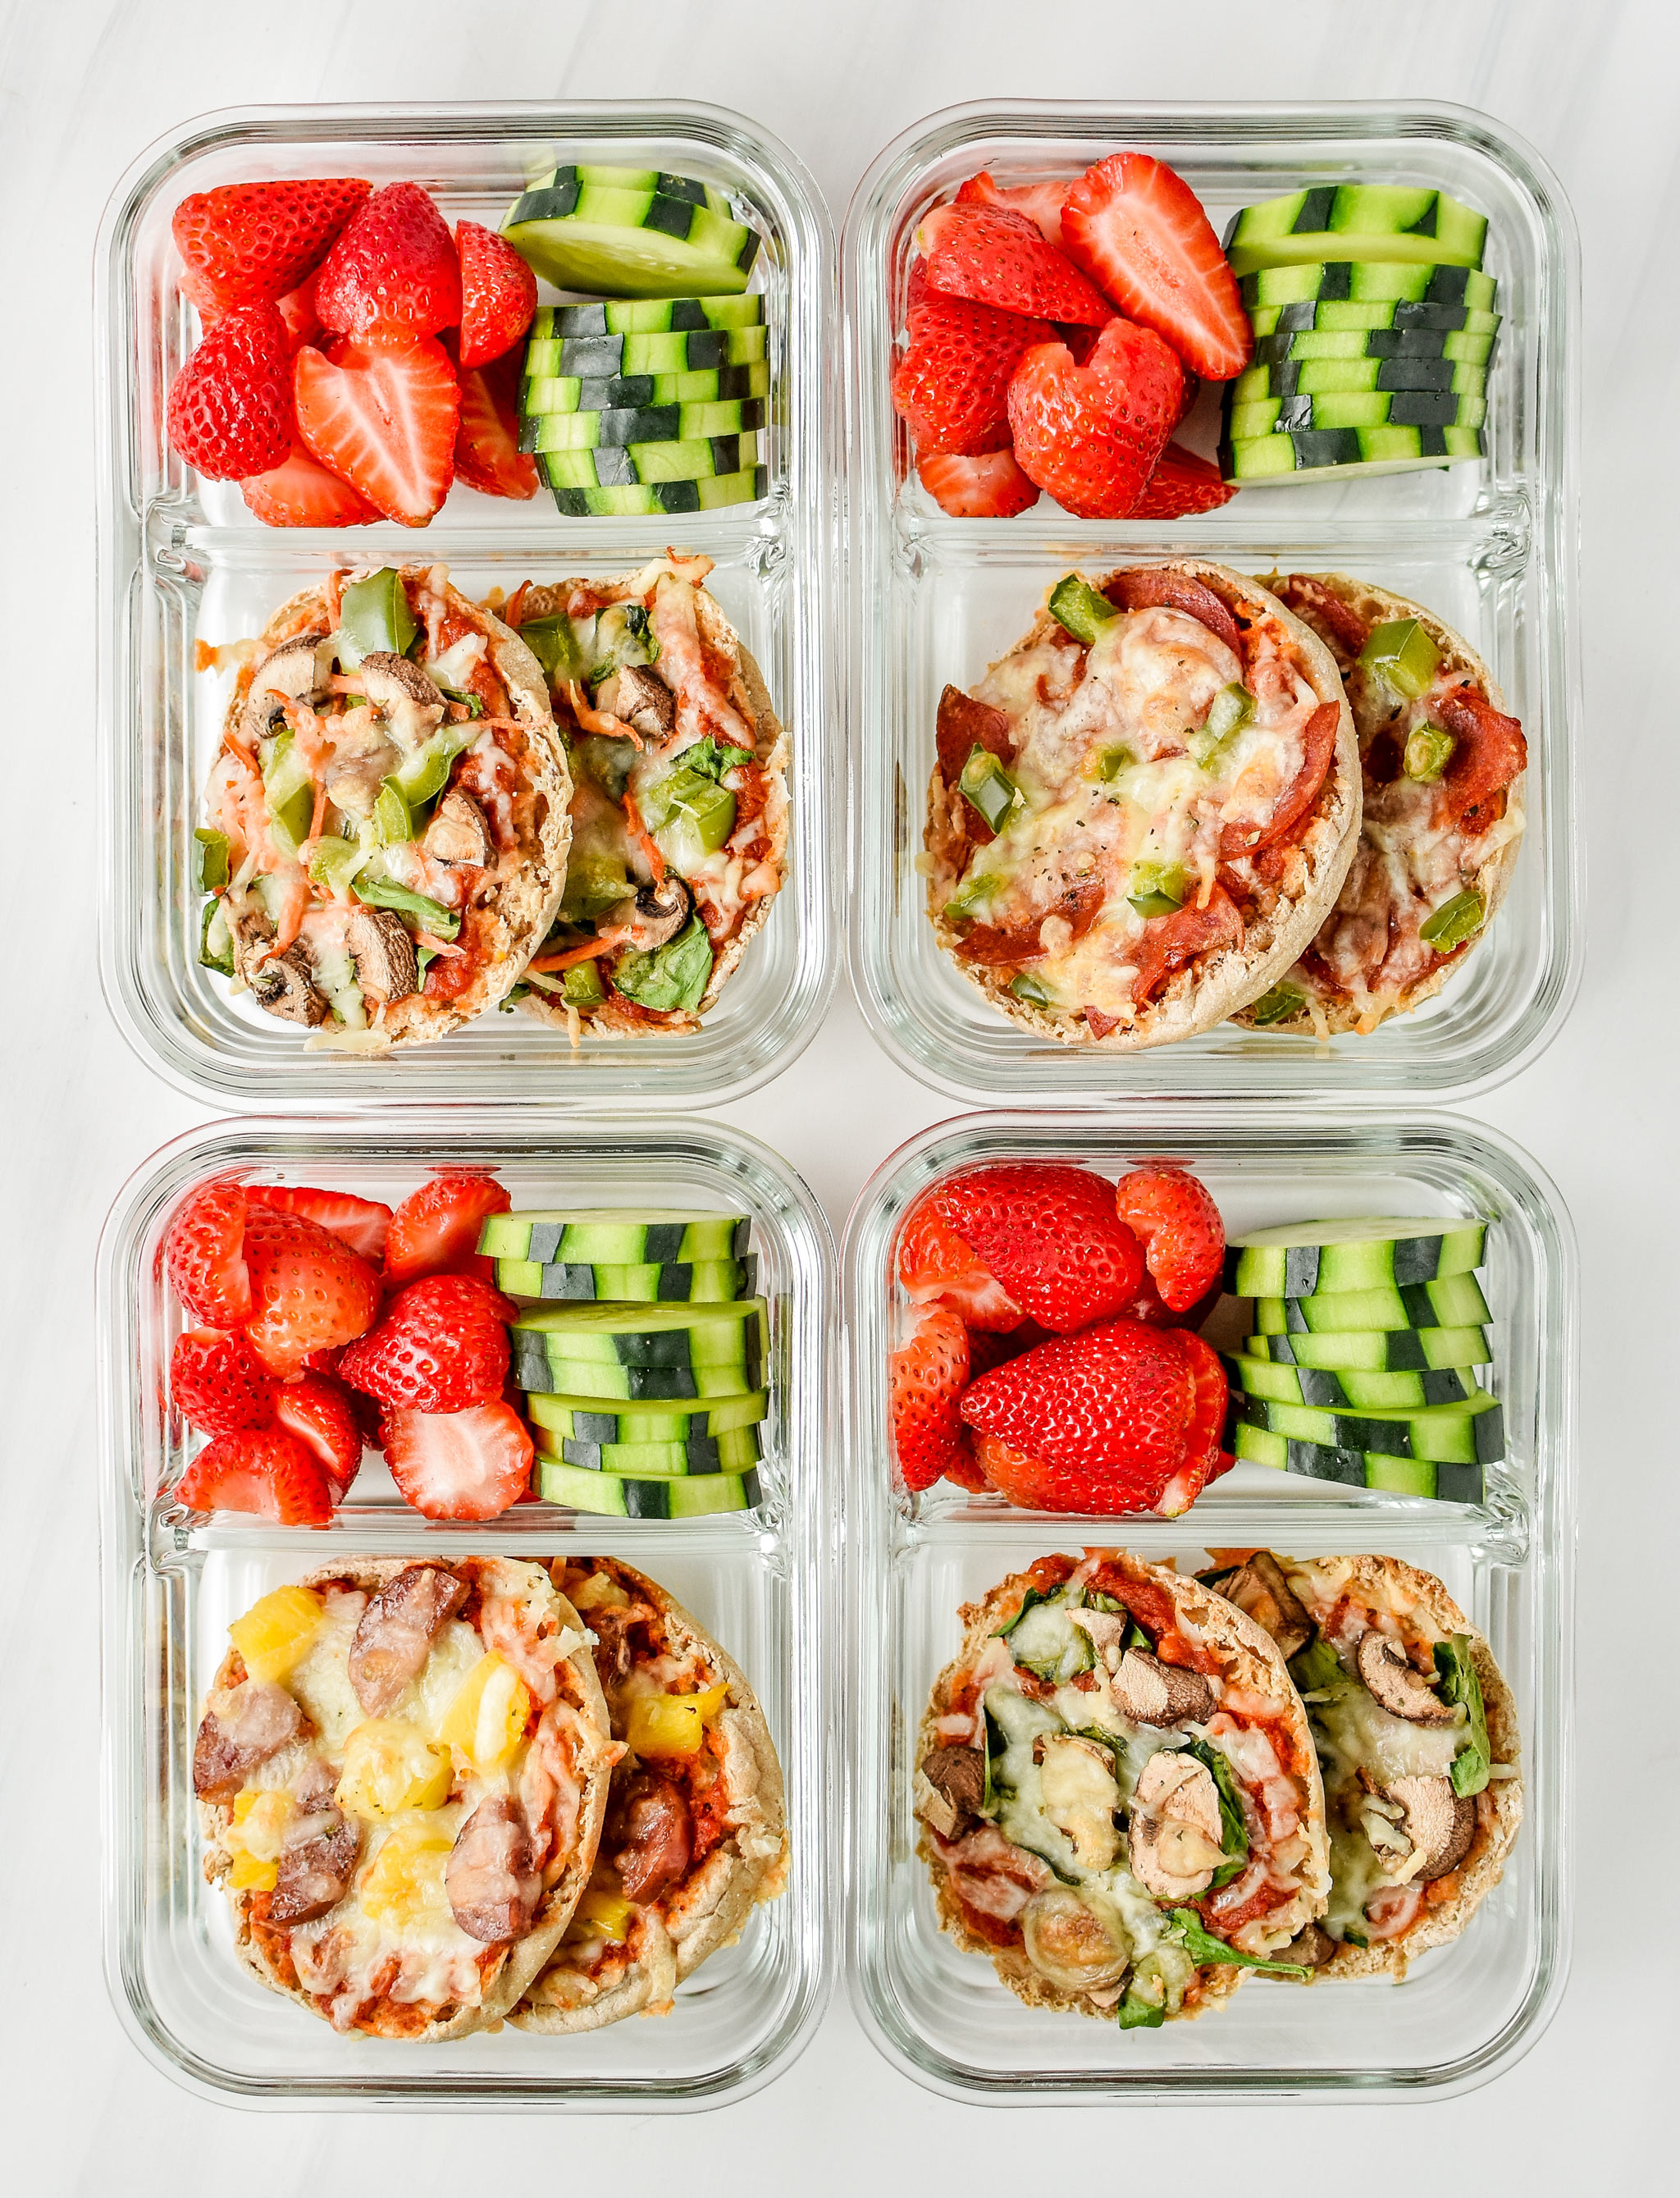 English muffin mini pizzas meal prep pictured from above in meal prep containers with fresh cut strawberries and cucumbers.